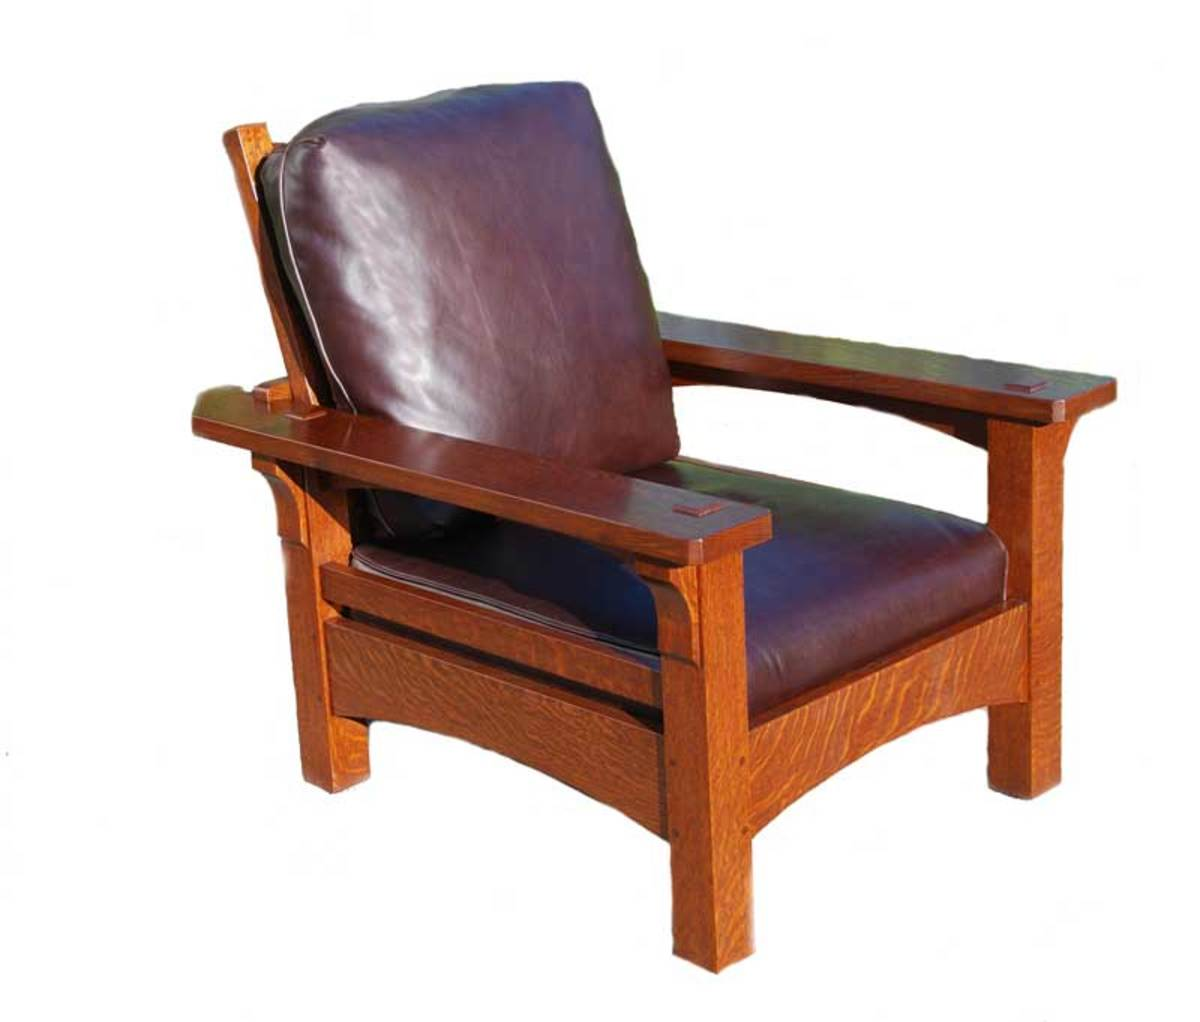 Voorhees recently introduced an accurate replica of the original 'Onondaga' Morris Chair.